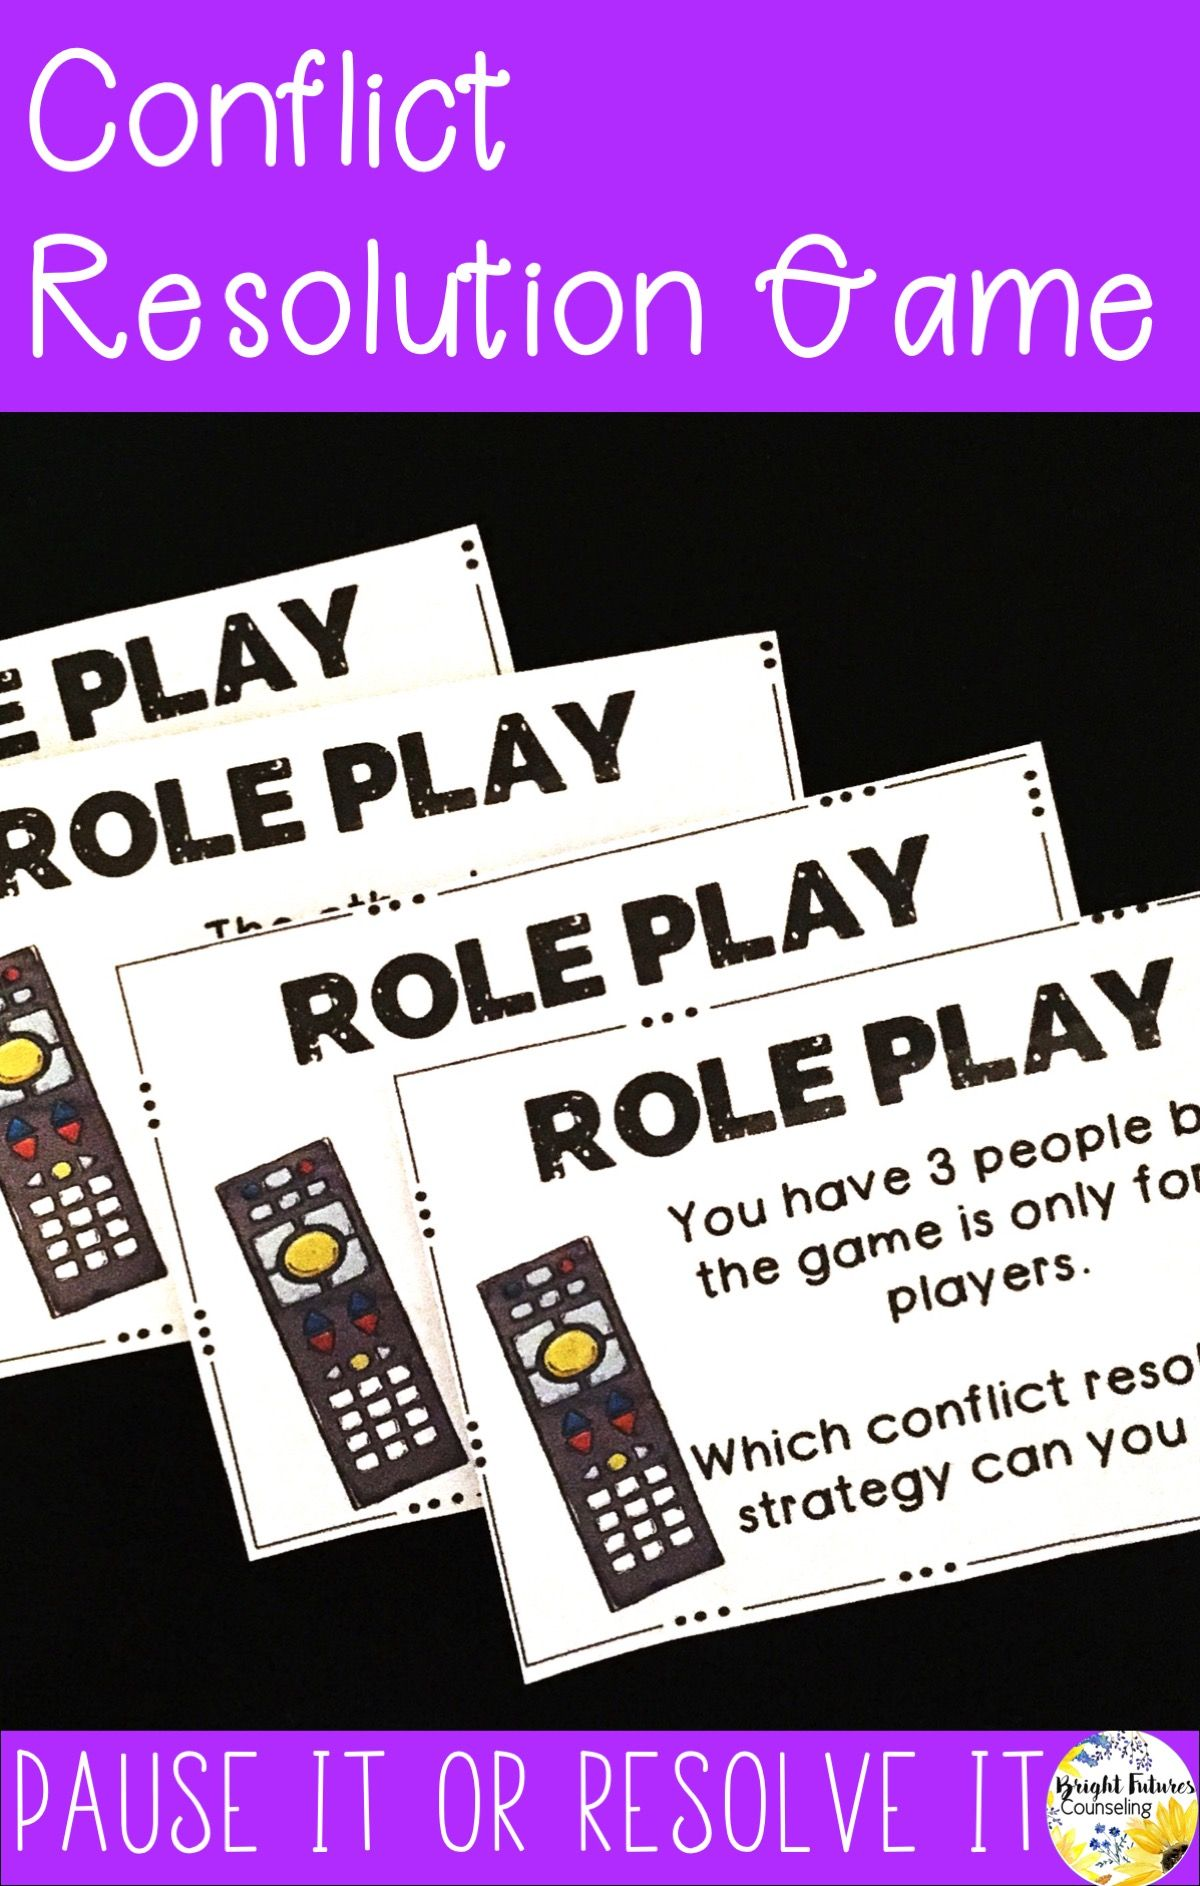 Conflict Resolution Games And Activities  Pause It And Resolve It